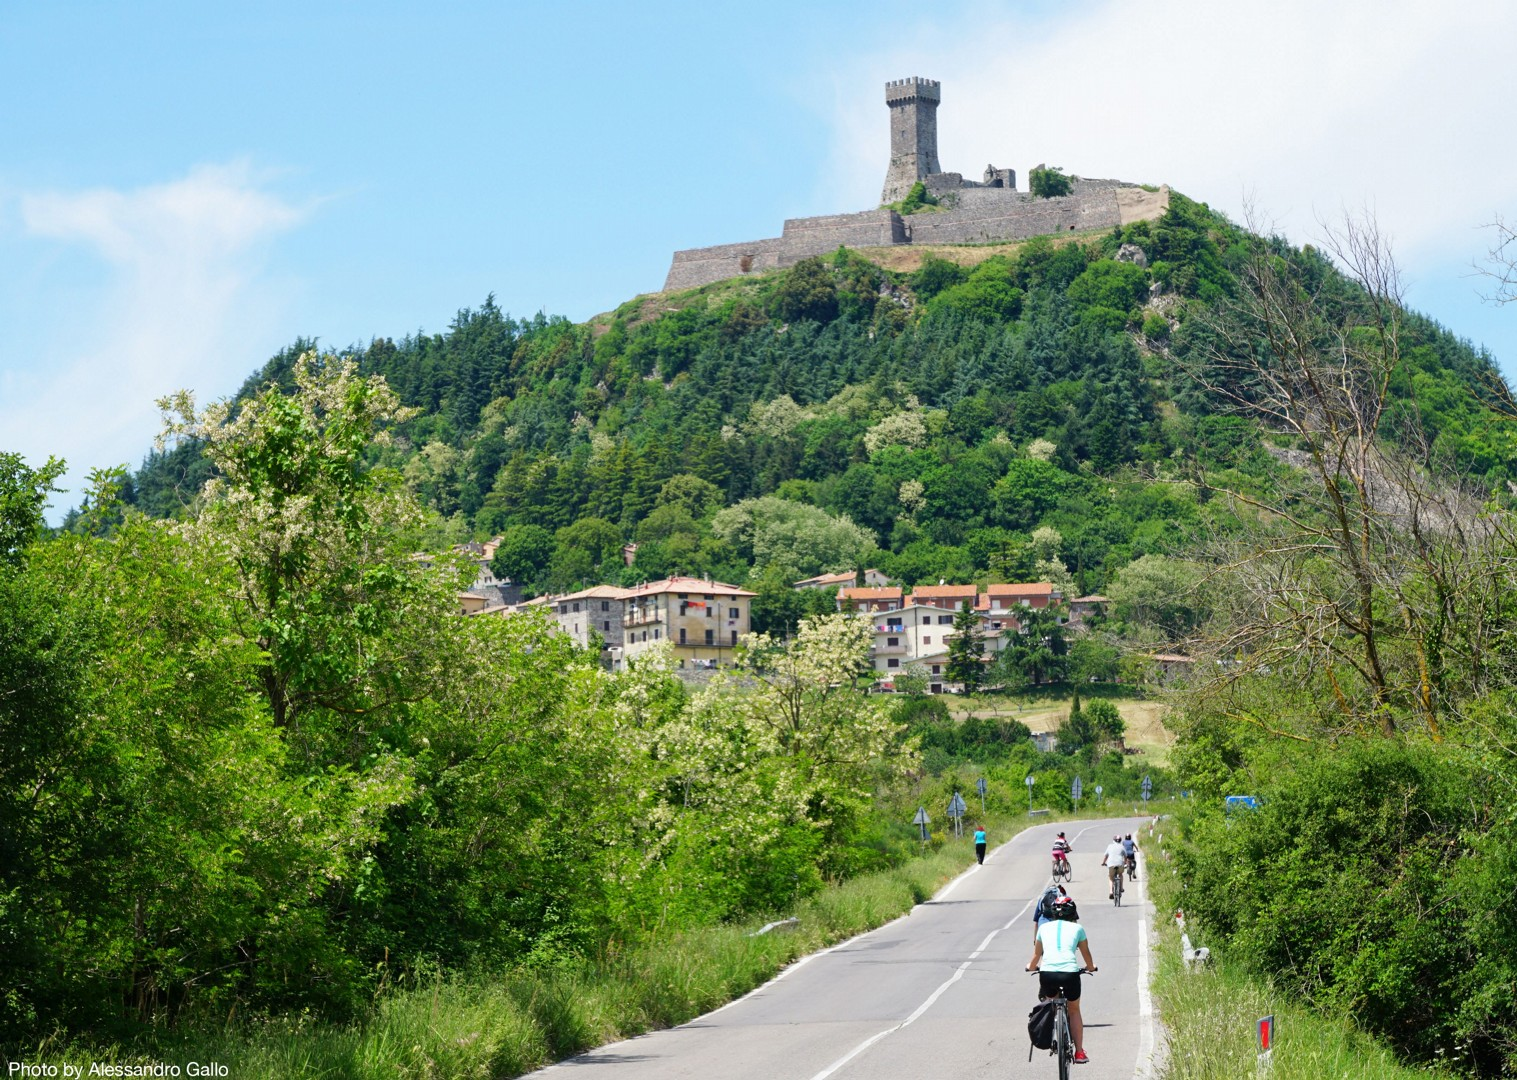 Guided-Leisure-Cycling-Holiday-Italy-Via-Francigena-Tuscany-to-Rome - Italy - Via Francigena (Tuscany to Rome) - Guided Leisure Cycling Holiday - Italia Leisure and Family Cycling